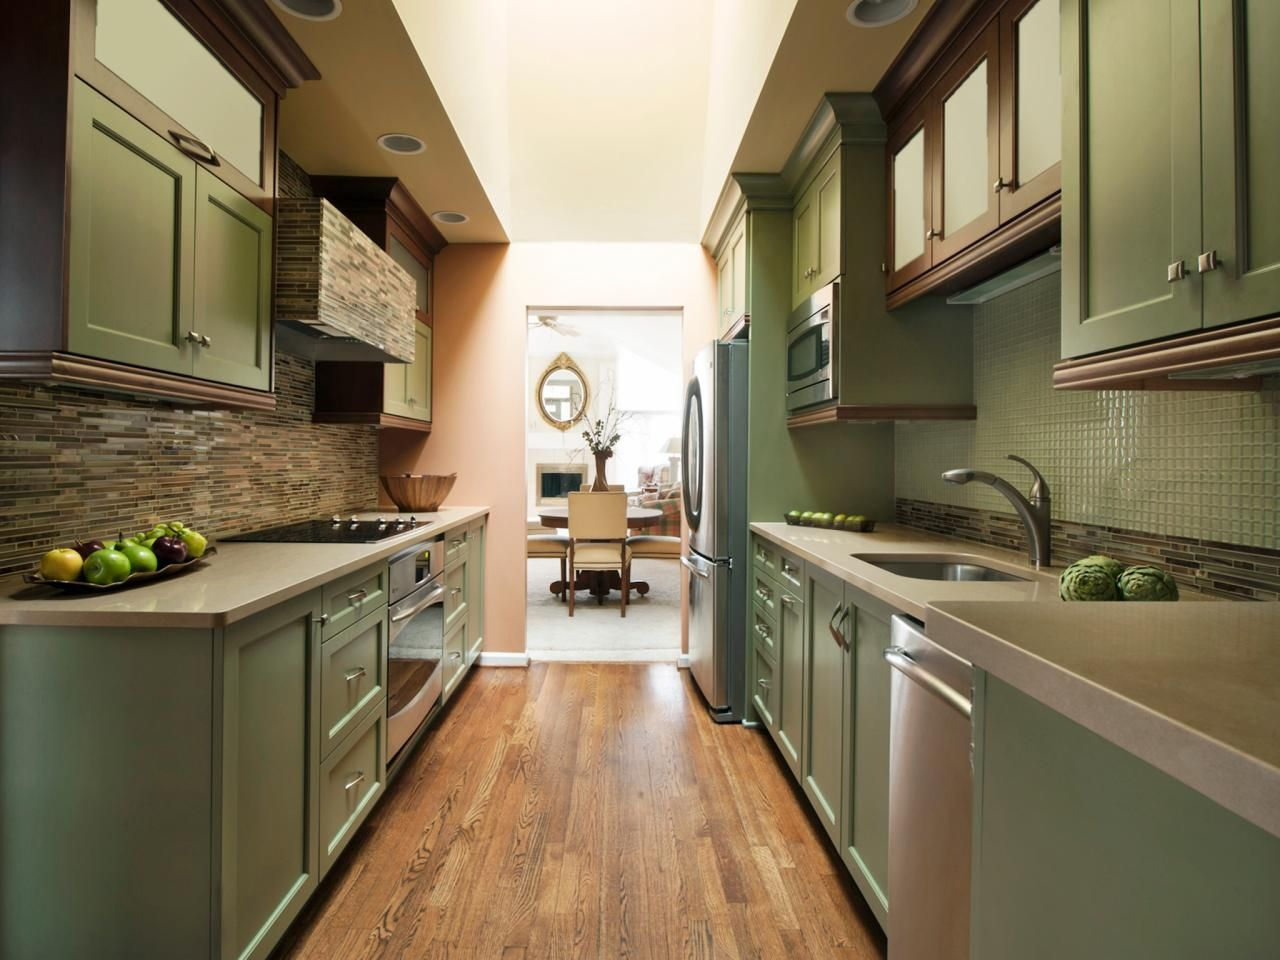 small galley kitchen design pictures ideas from galley hgtv com has inspirational pictures ideas and expert tips on small galley kitchen design